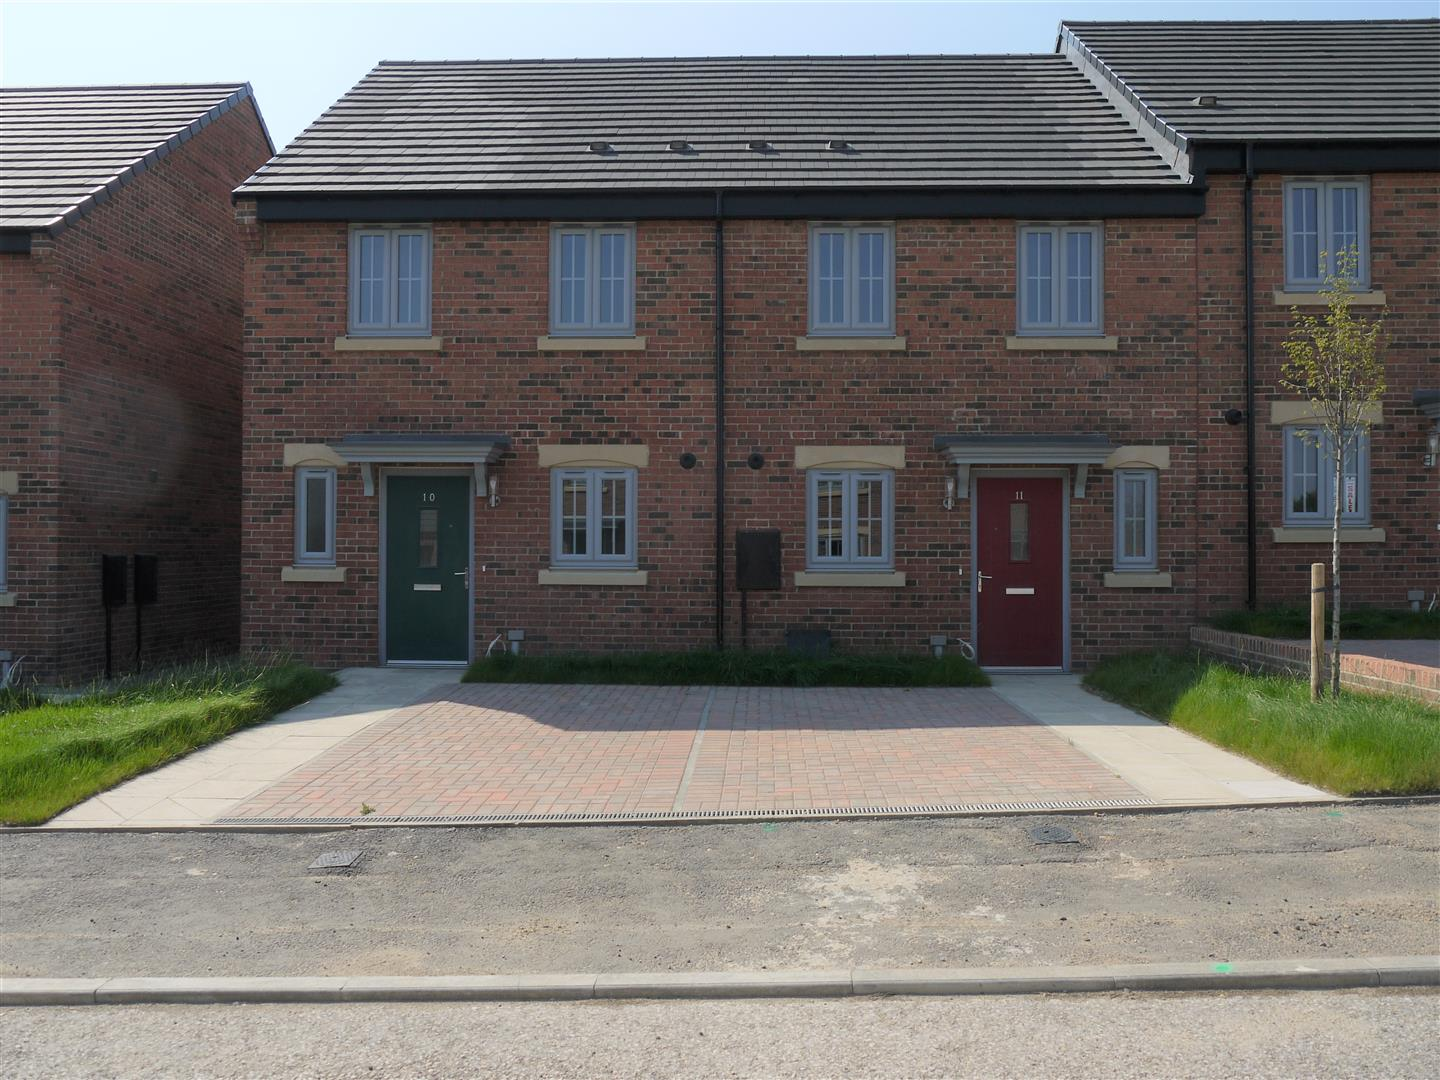 Furrow Grange Middlesbrough, 2 Bedrooms  House - semi-detached ,UK New Homes